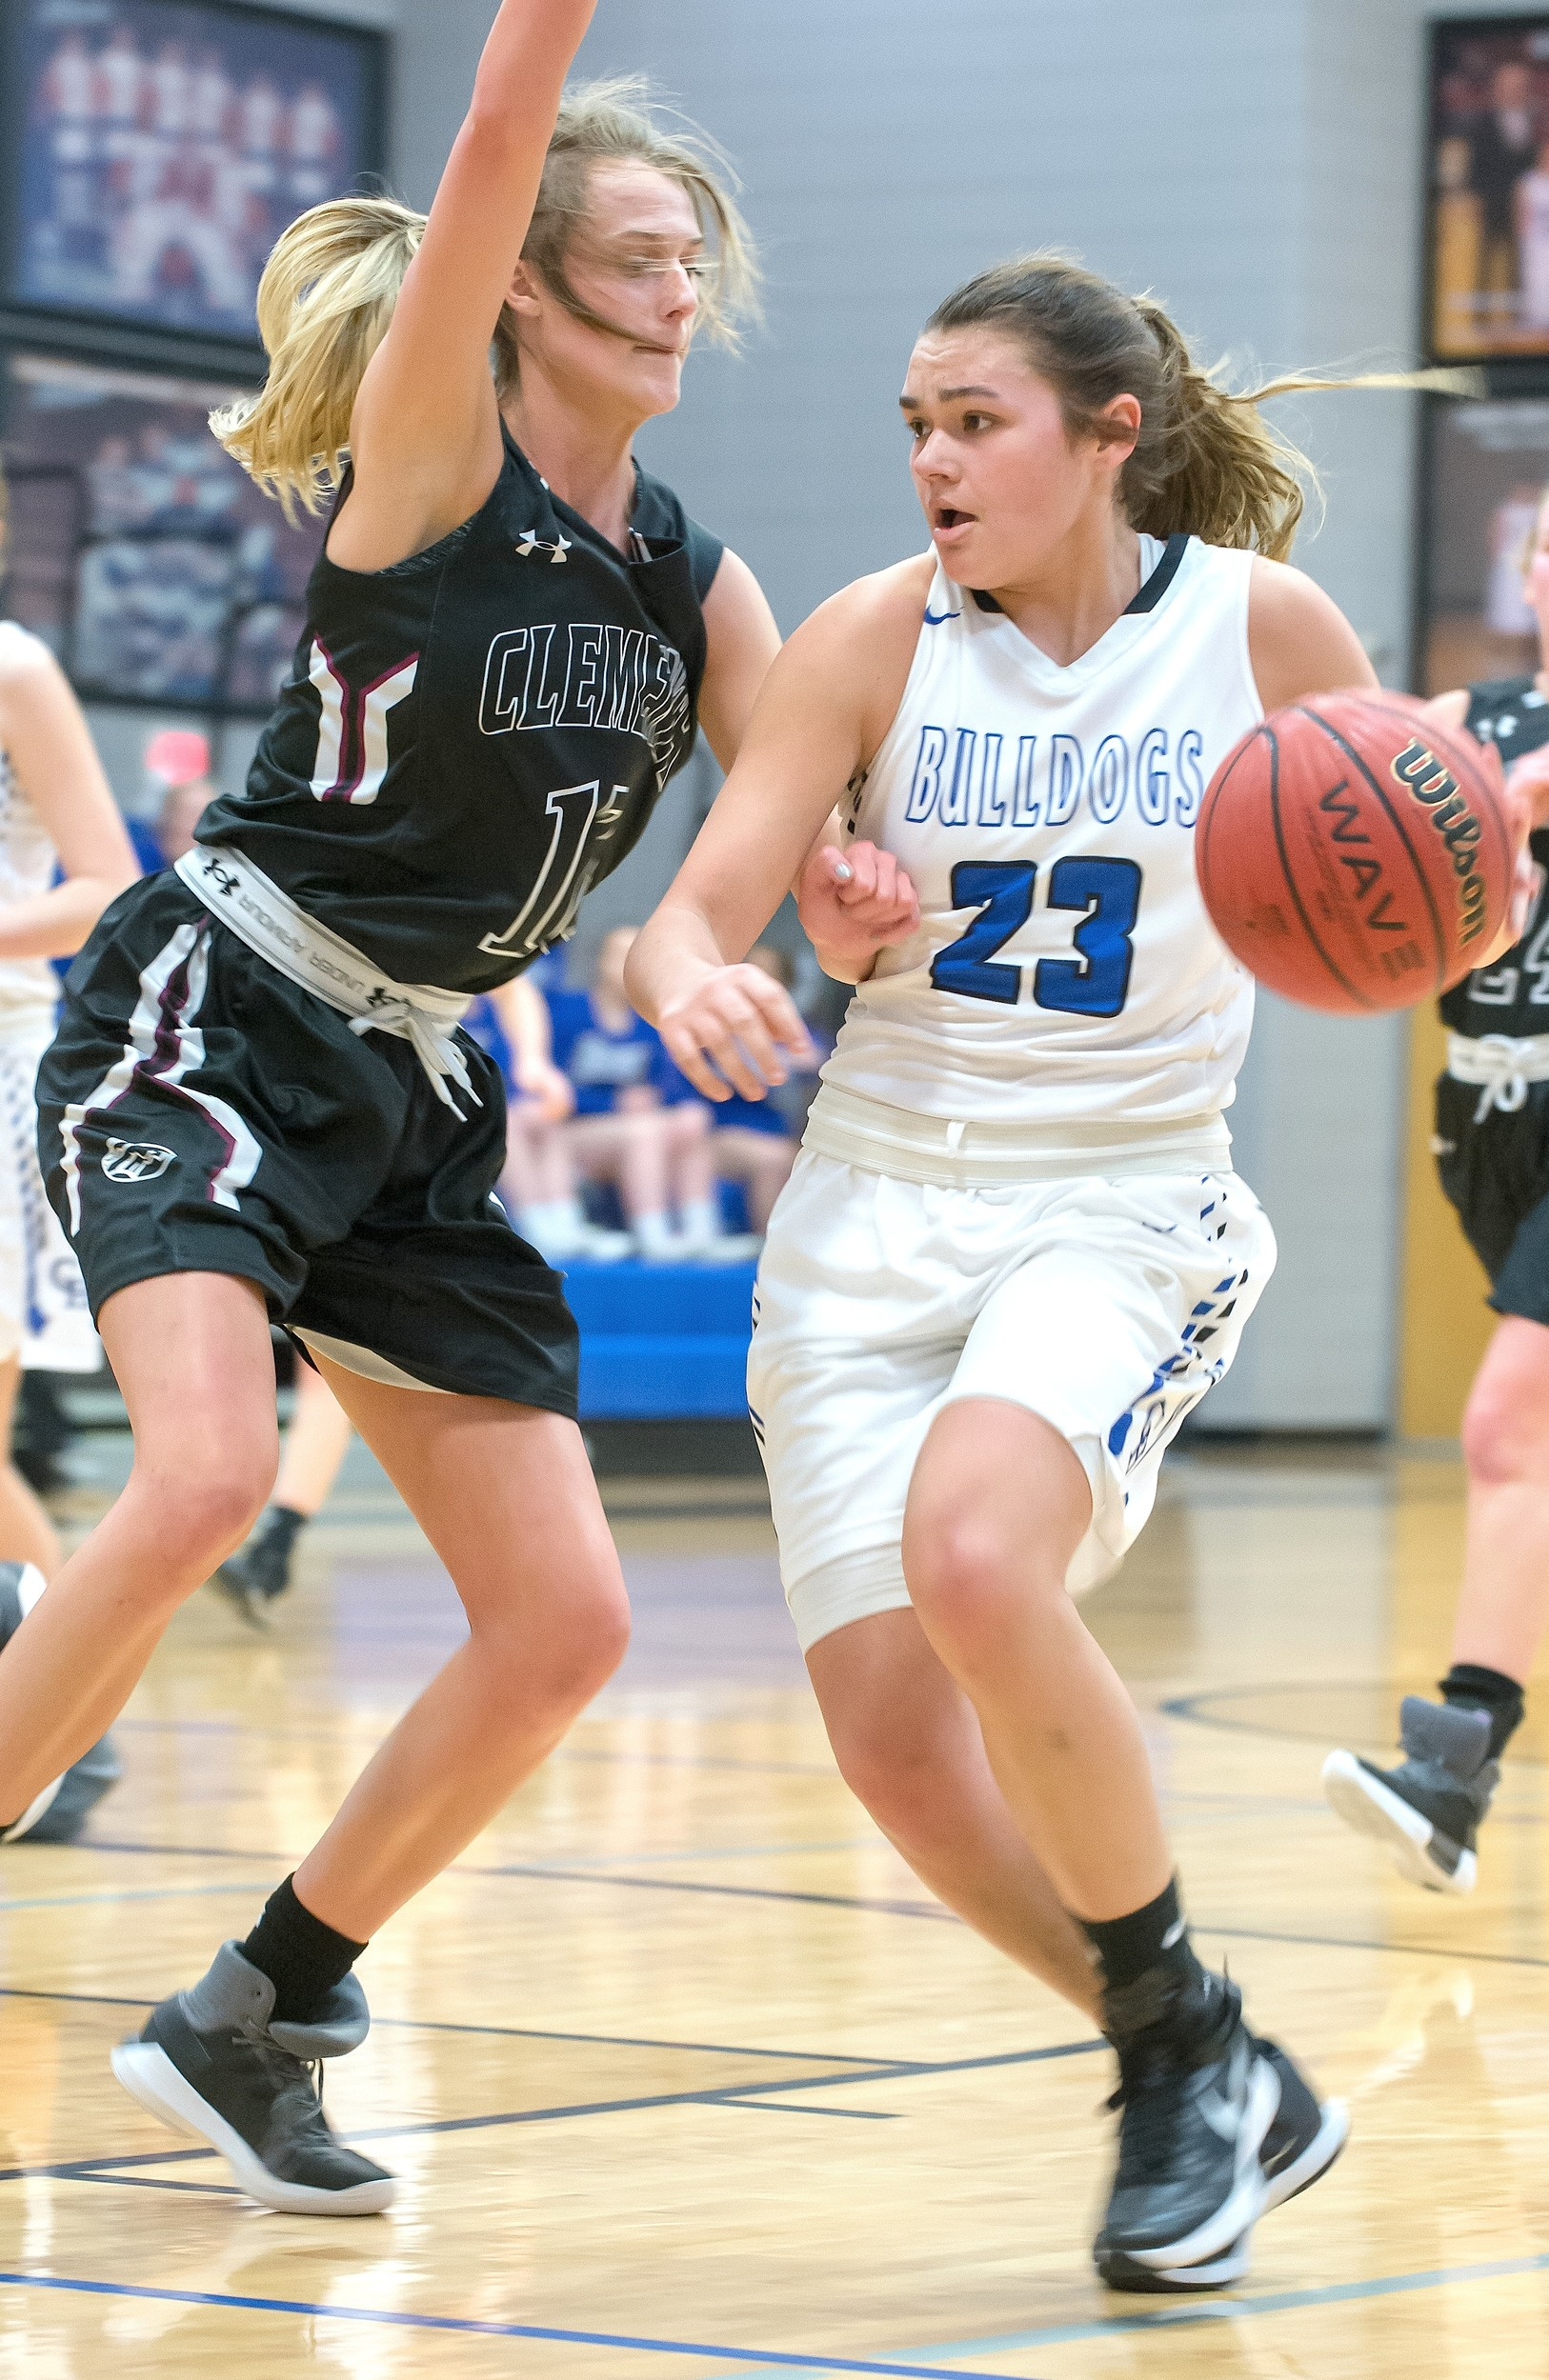 Carbon Hill's Molly Kate Atkins (23) is defended by Clements'  Anna Page (12) during their 3A sub-region game at Carbon Hill High School on Monday. Atkins had 24 points in the Bulldogs' 65-58 win.